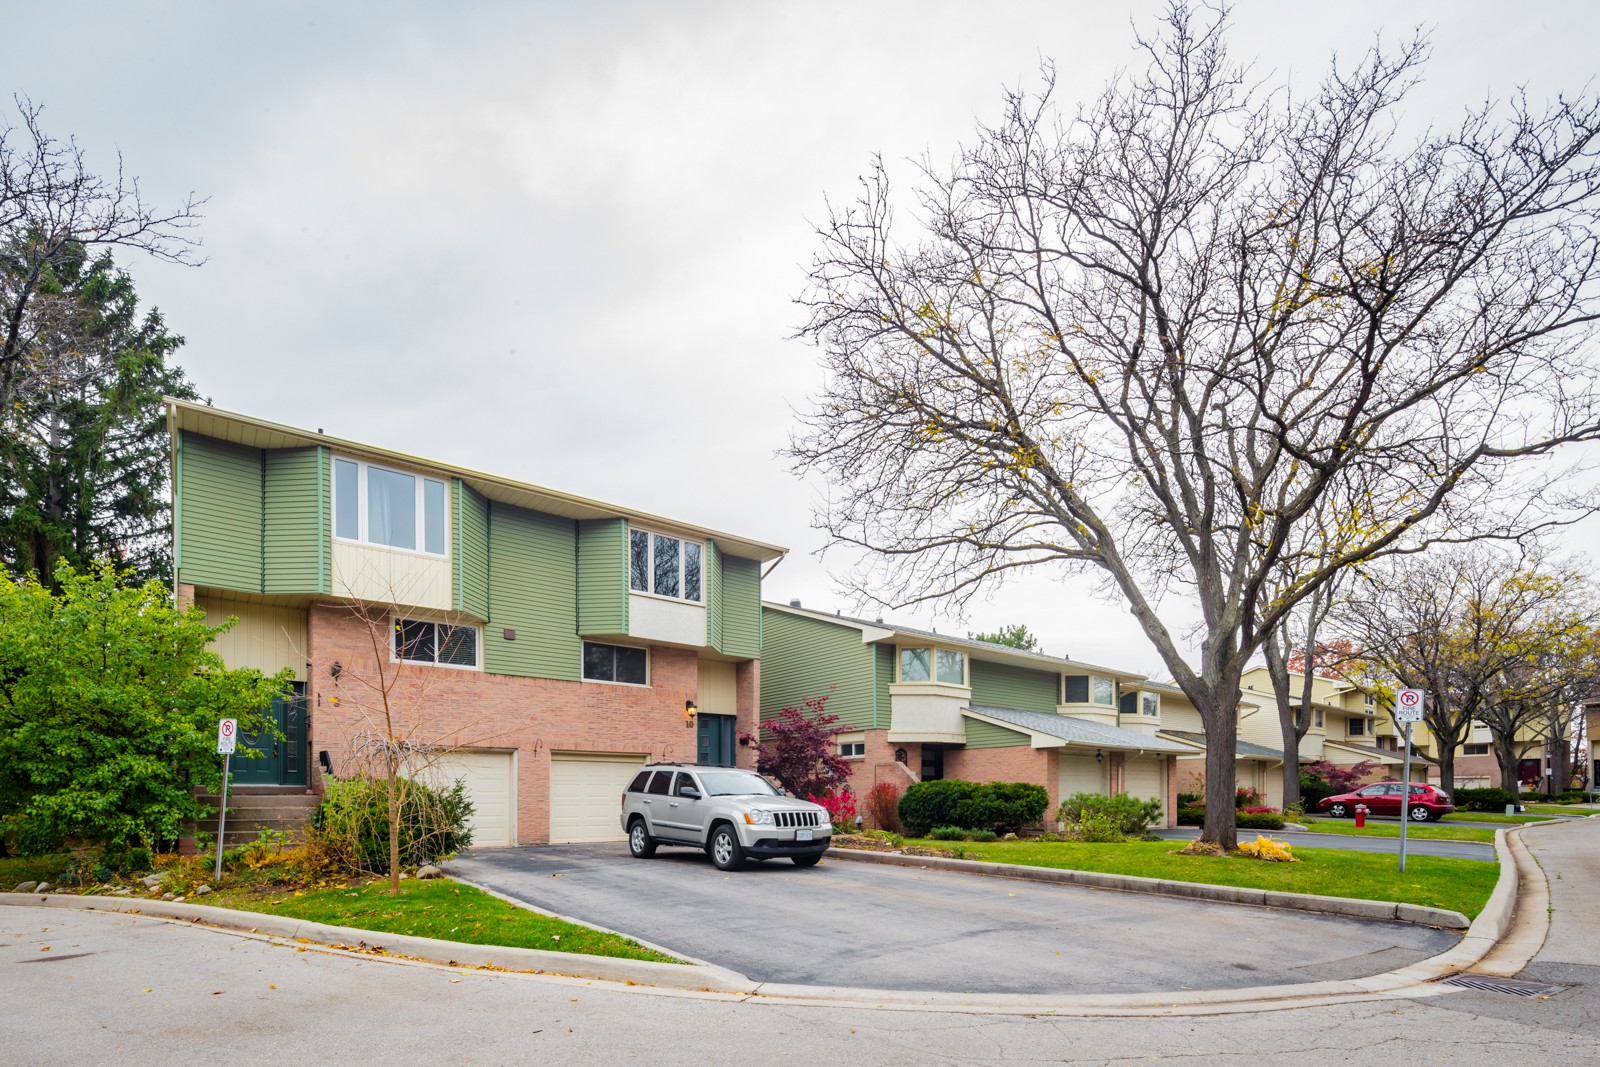 Village Gardens at 1135 McCraney St E, Oakville 1